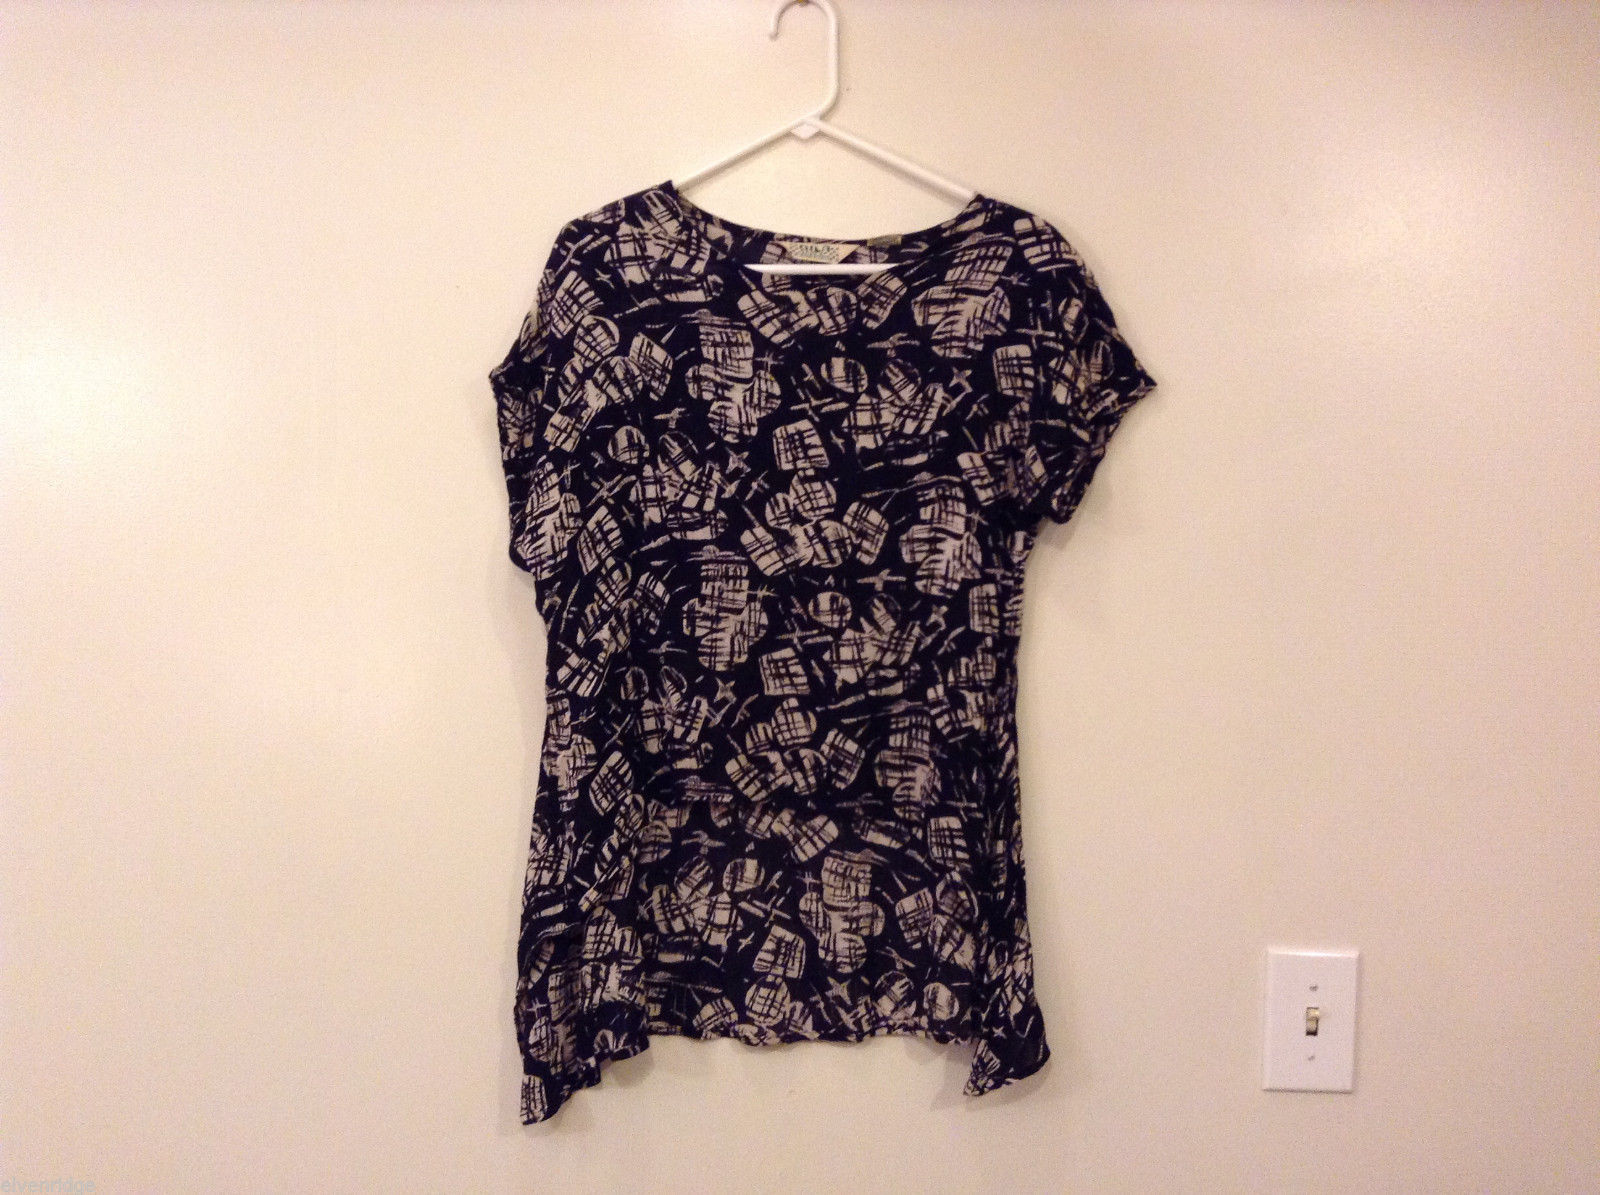 Bila of California Women's Size S Top Black & White Abstract Print w/ Hi-Lo Hem